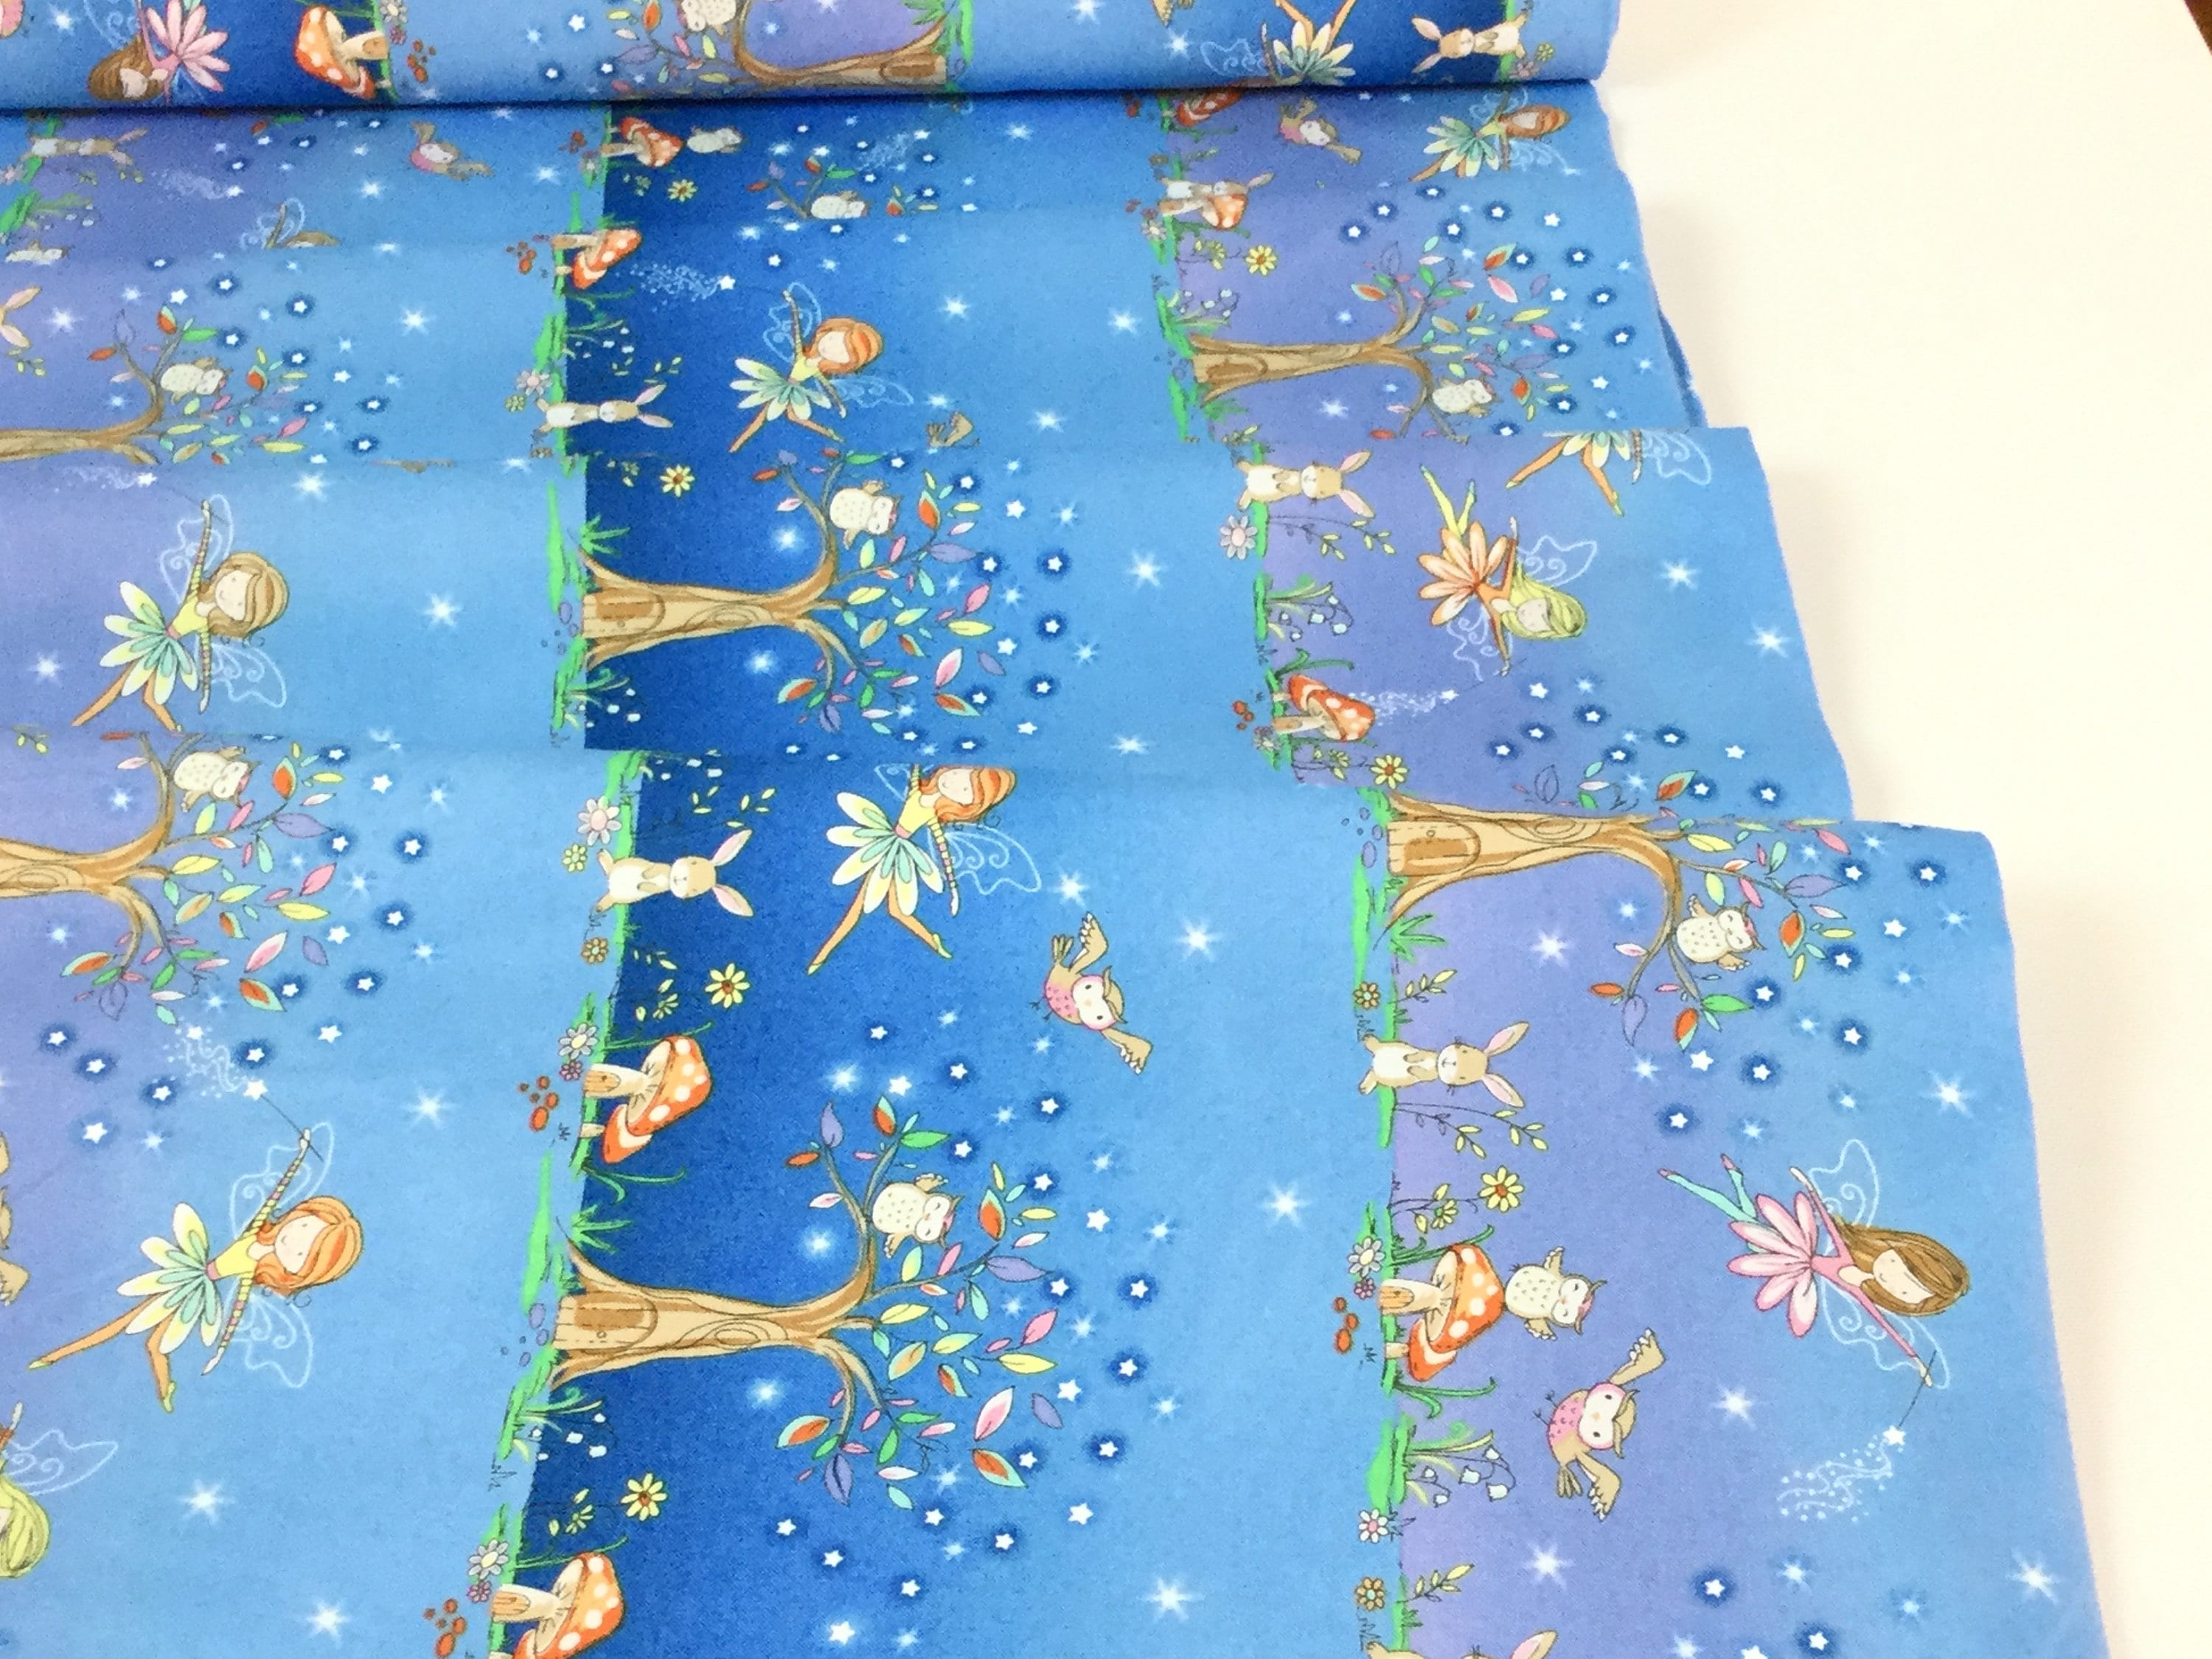 Starry Night Forest Border Stripe Blue Forest Friends | Etsy